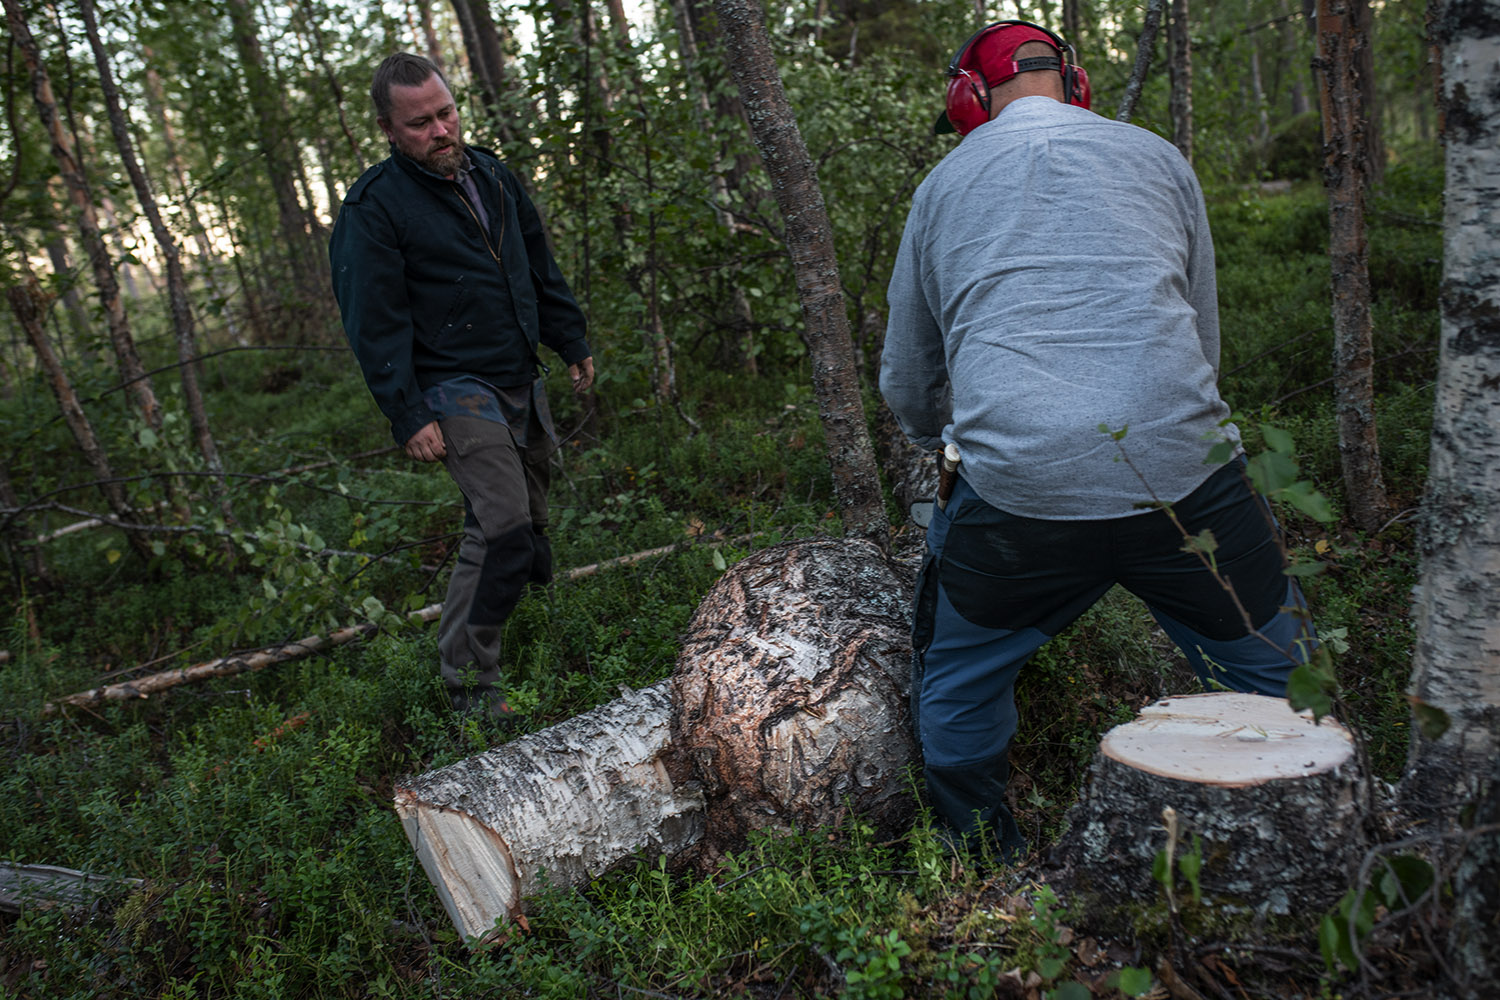 Two men in the wood cutting a tree.